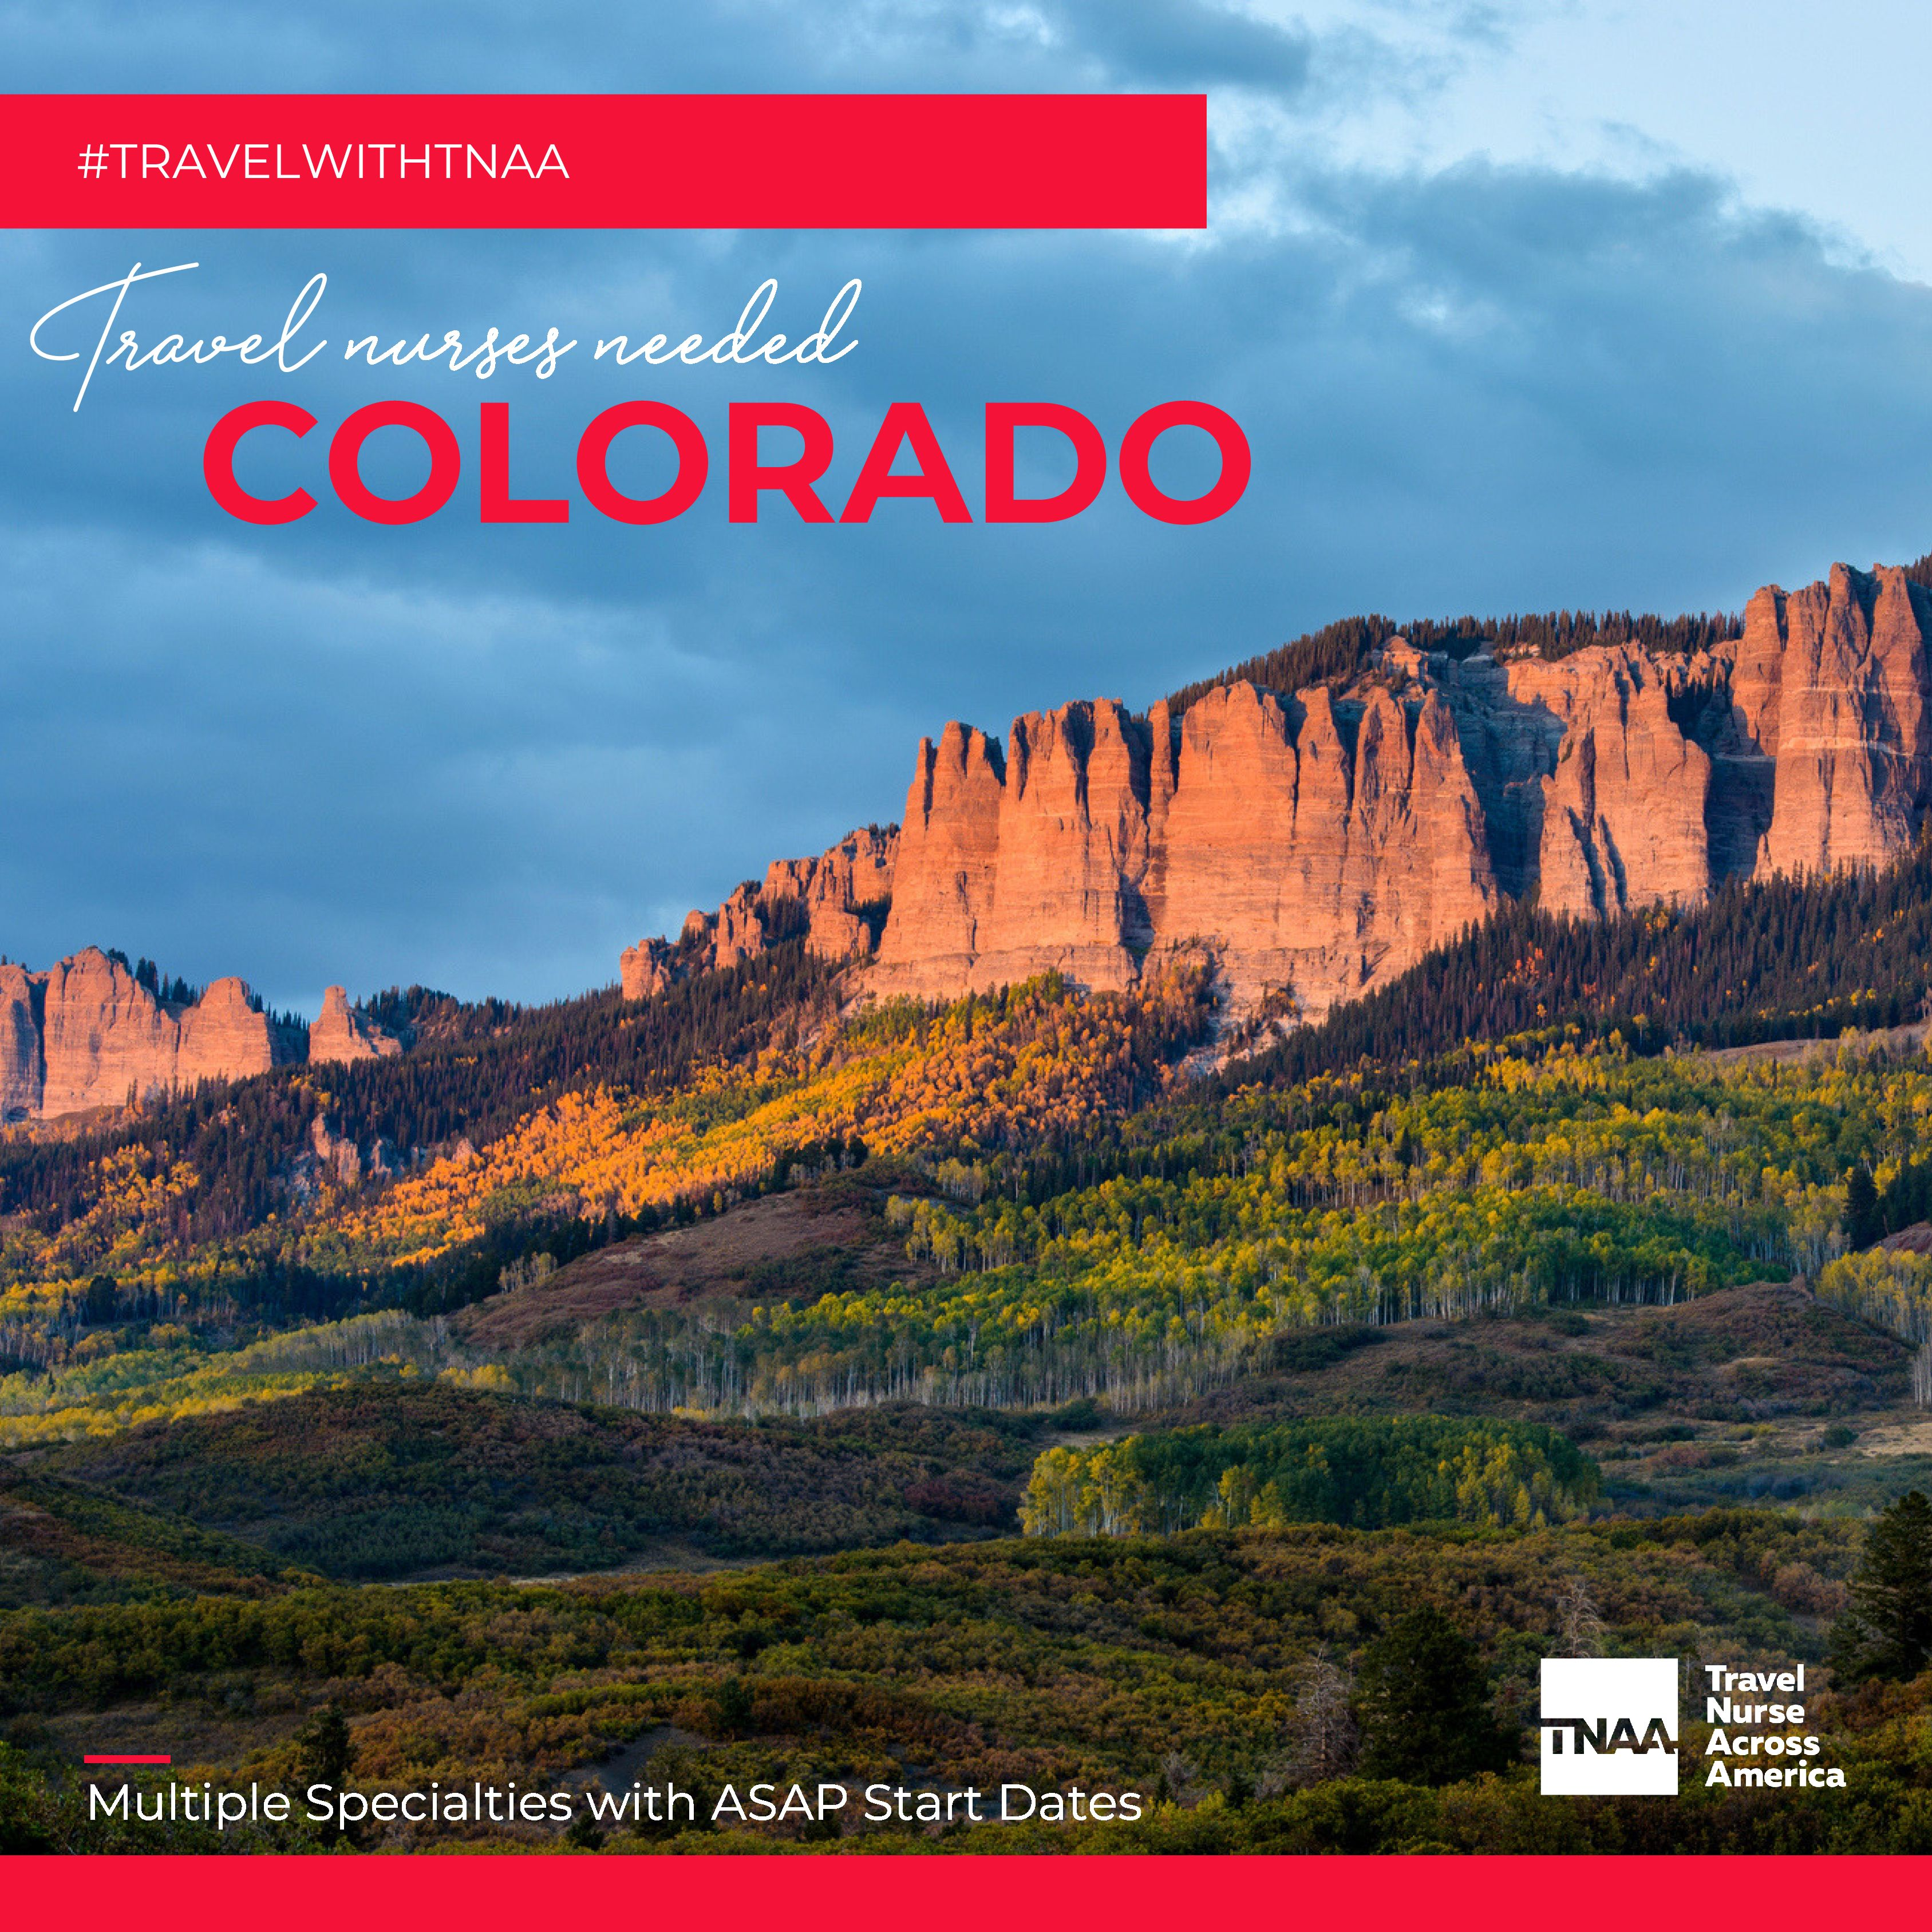 Your next adventure is in Colorado! We have immediate